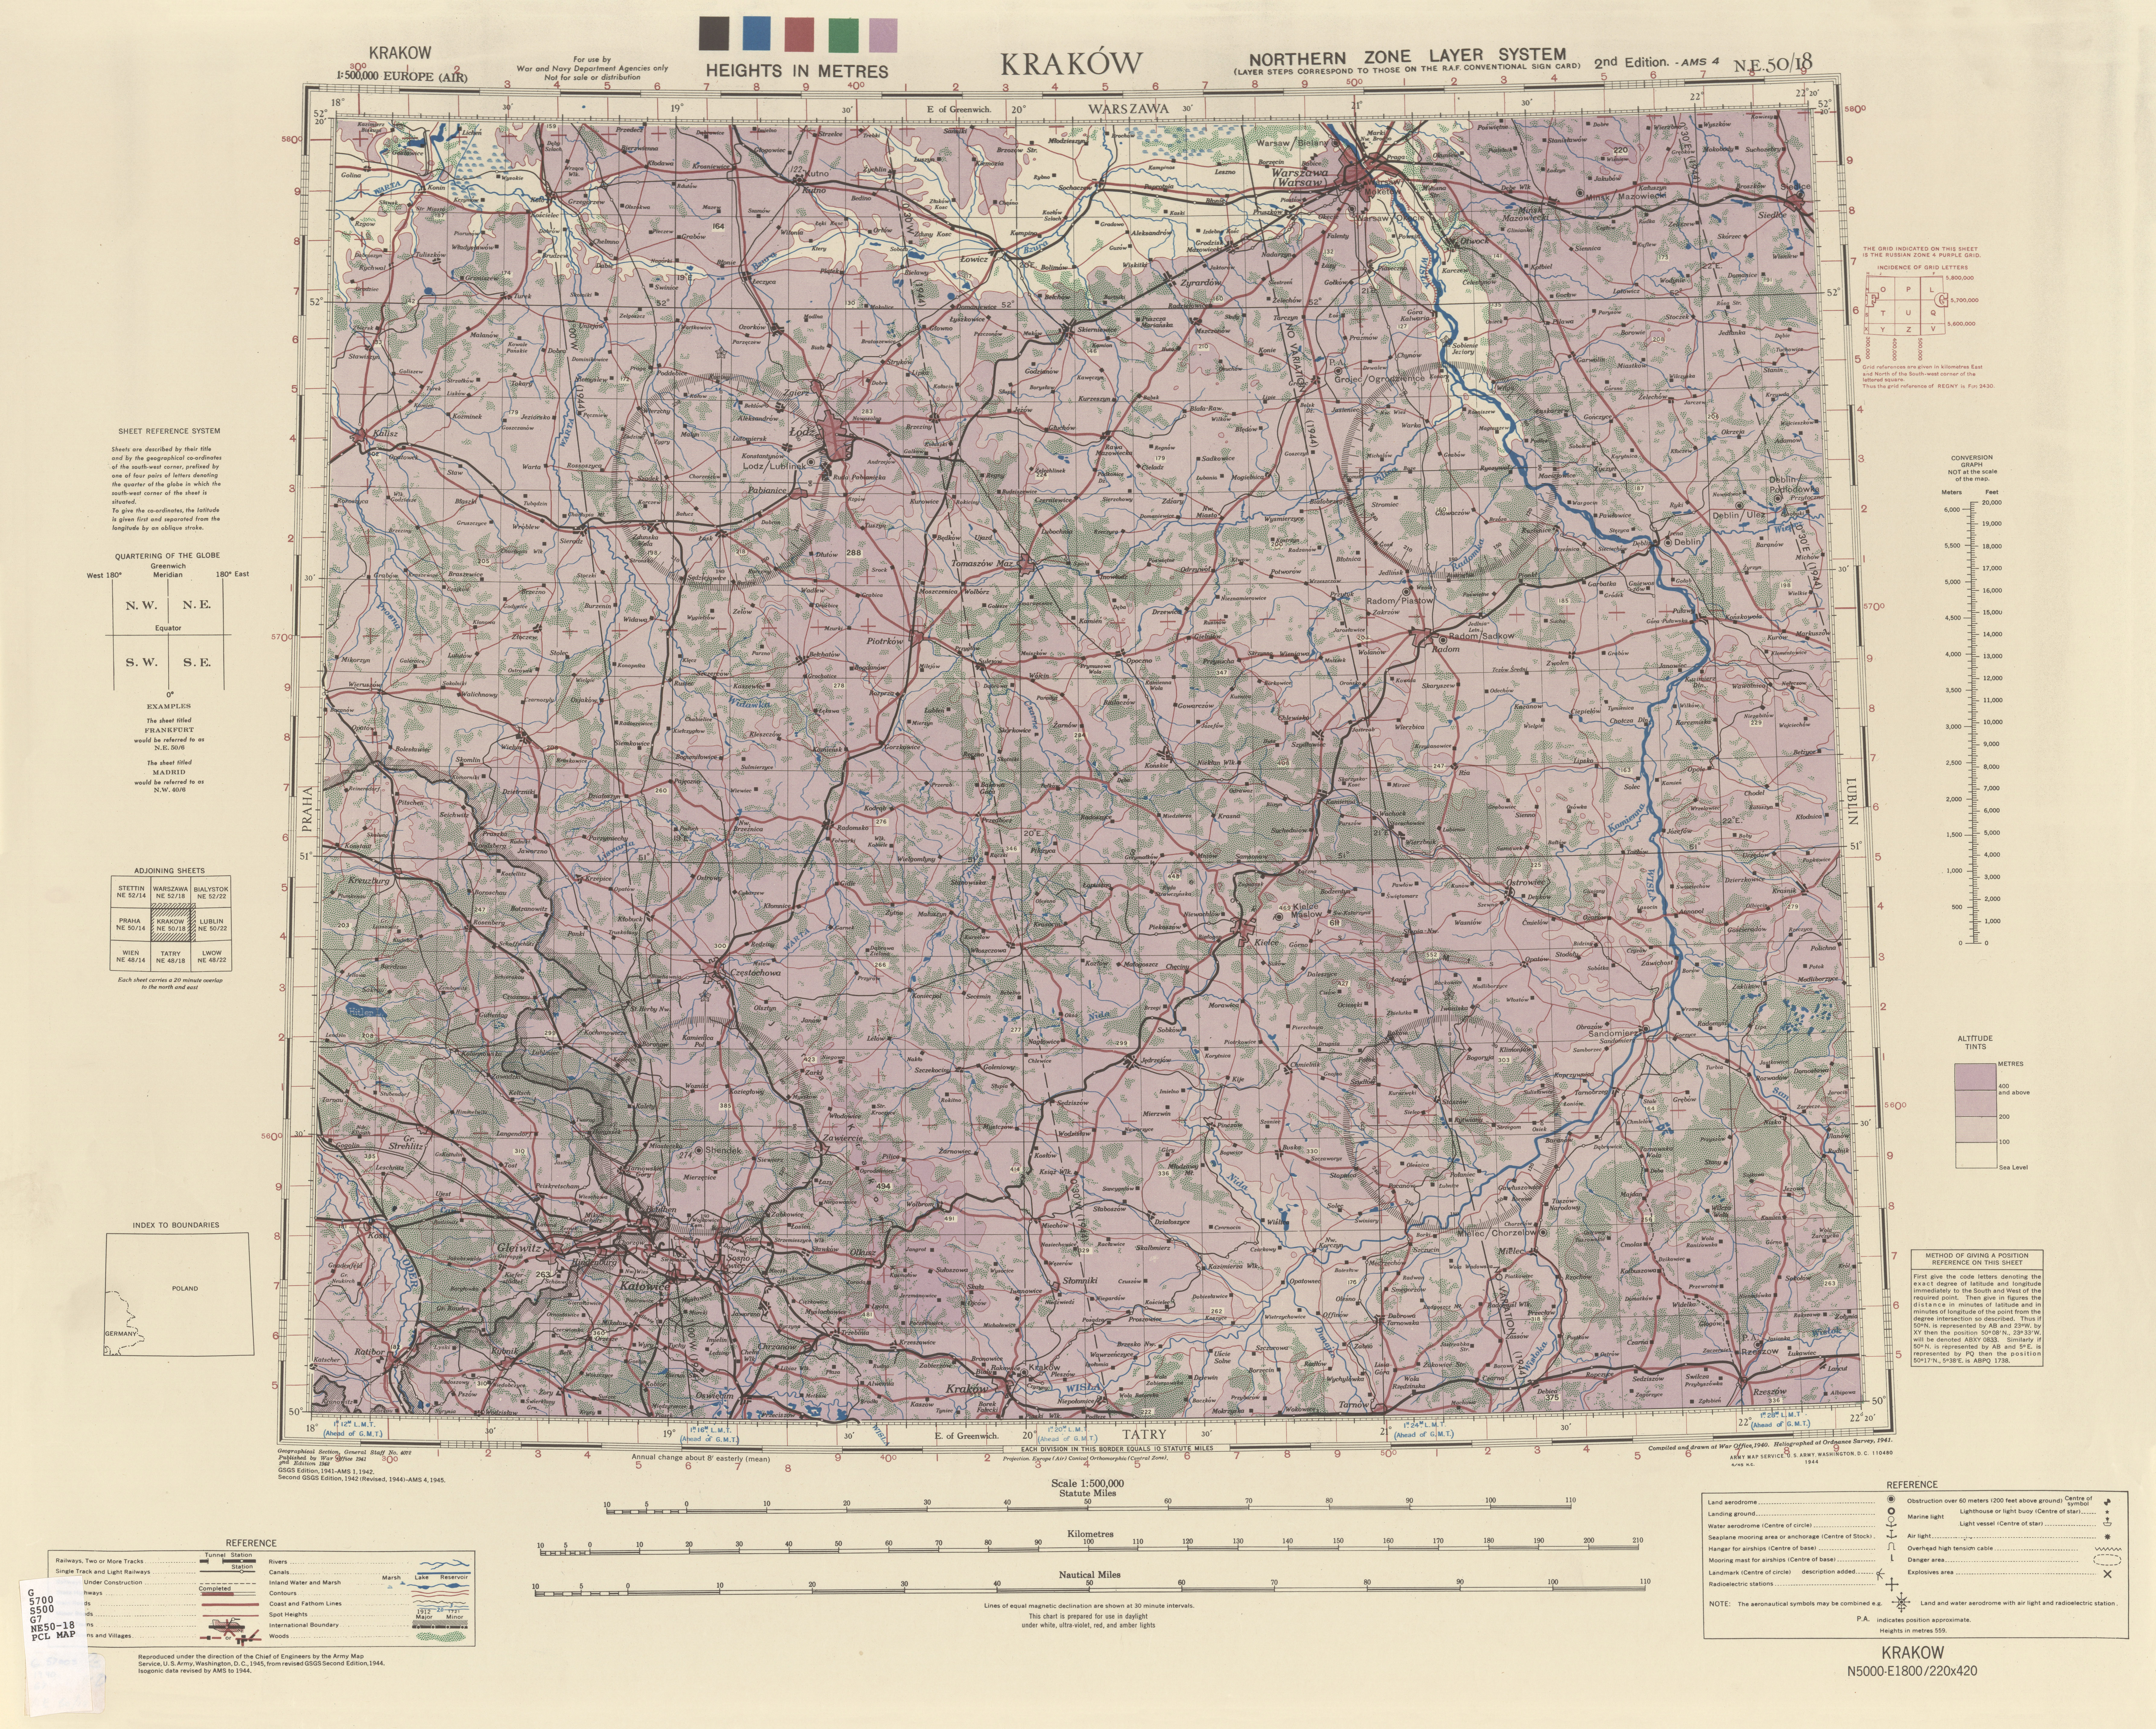 Europe Air Topographic Maps Perry Castaa Eda Map Collection